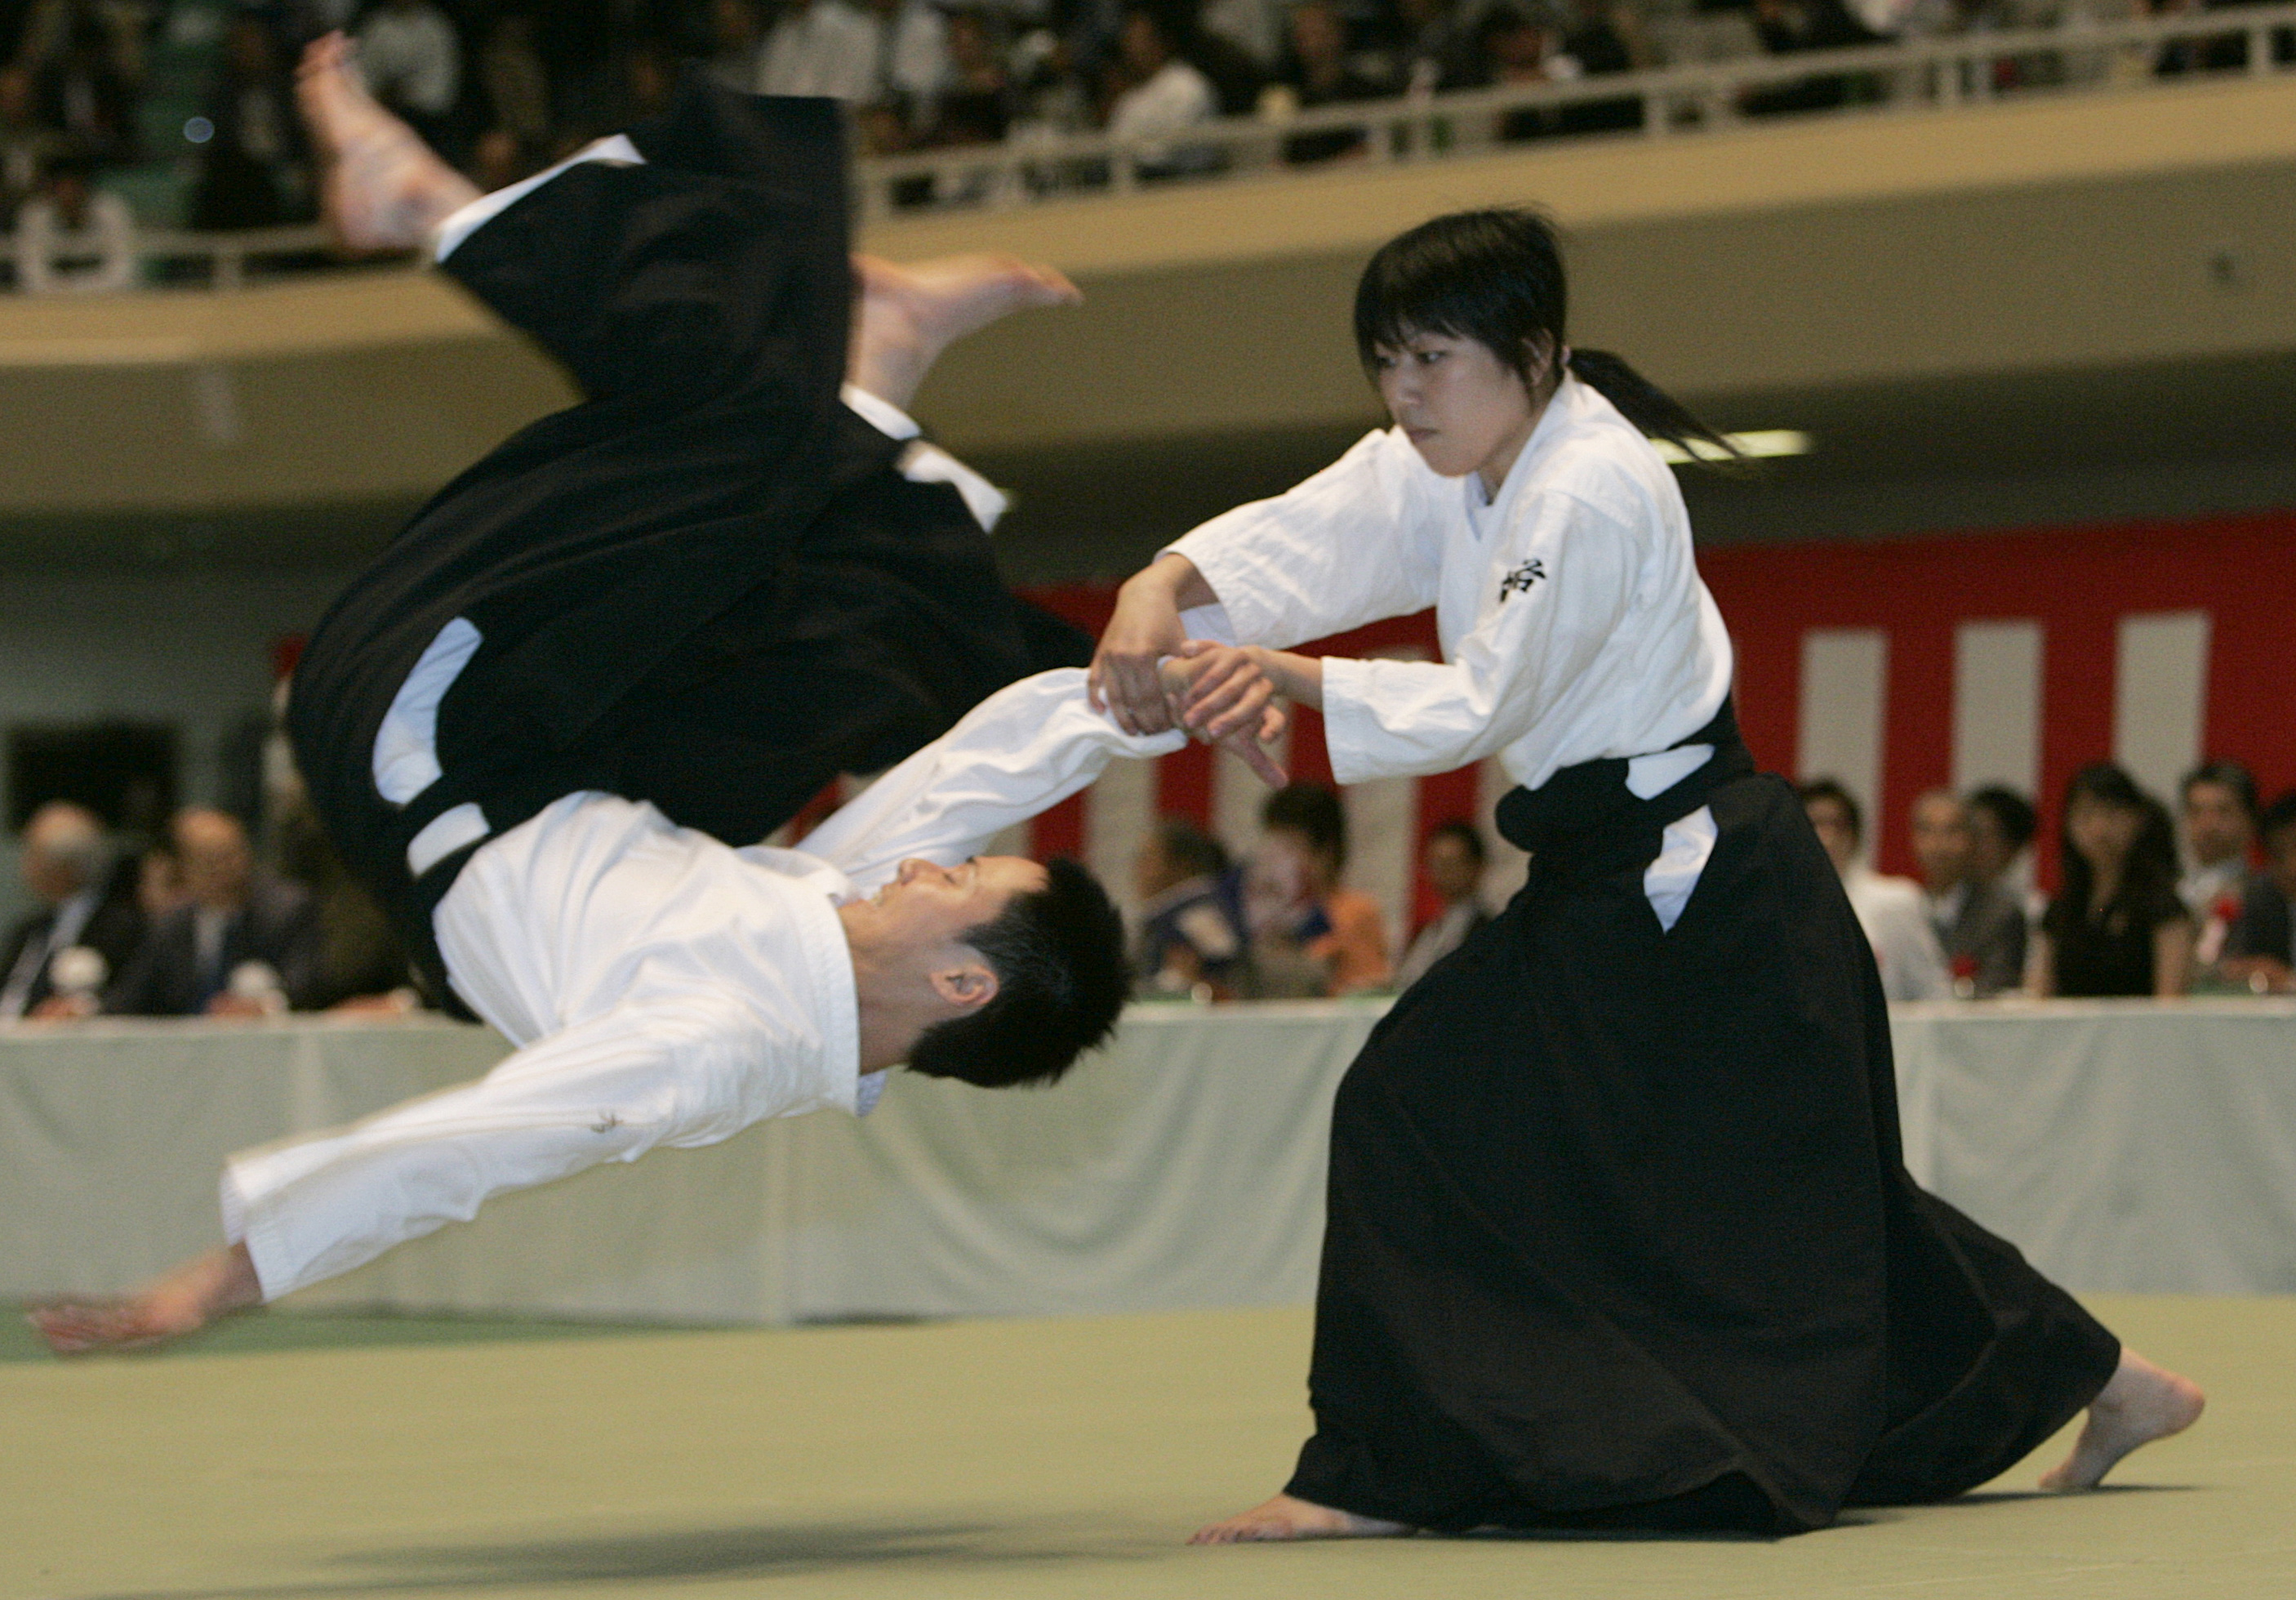 Japanese martial art Aikido demonstrators perform during the 45th All Japan Aikido Demonstration in Tokyo May 26, 2007.   REUTERS/Kim Kyung-Hoon (JAPAN)